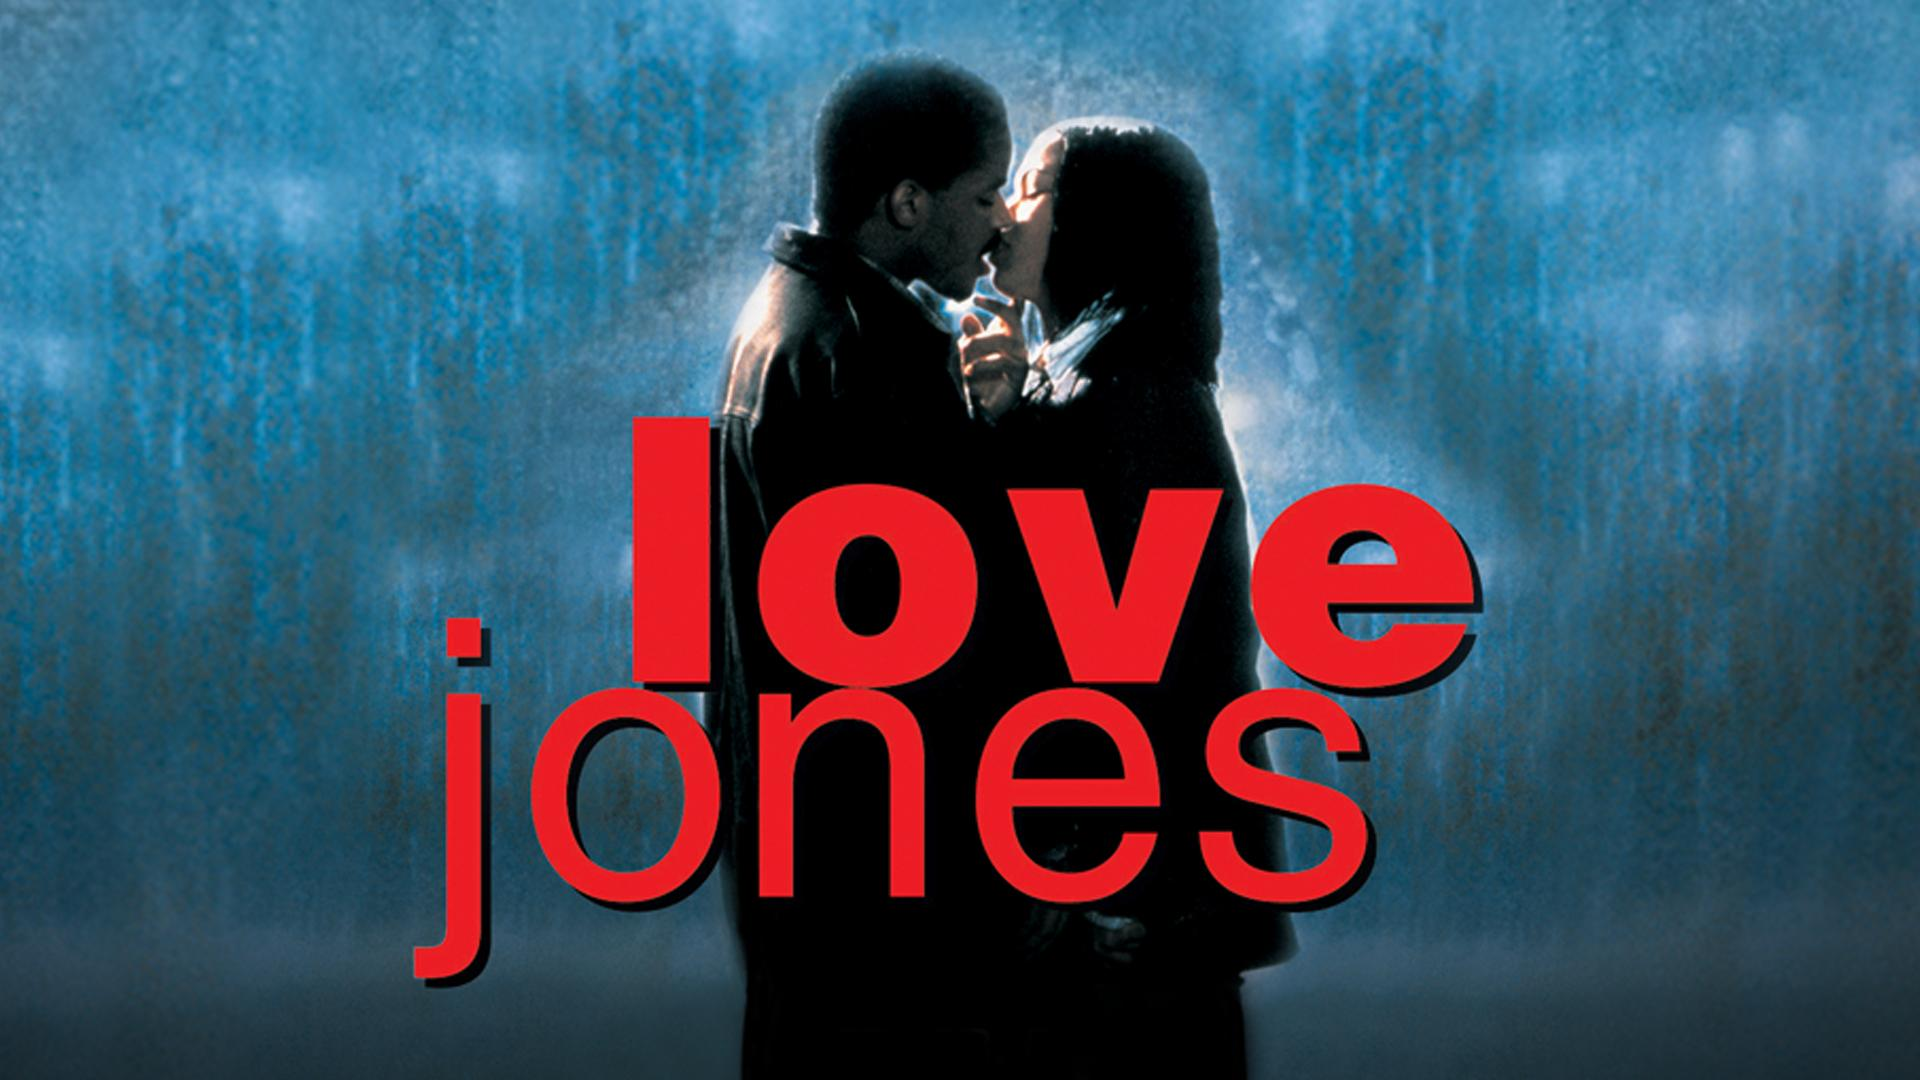 Love Jones - New Releases category image